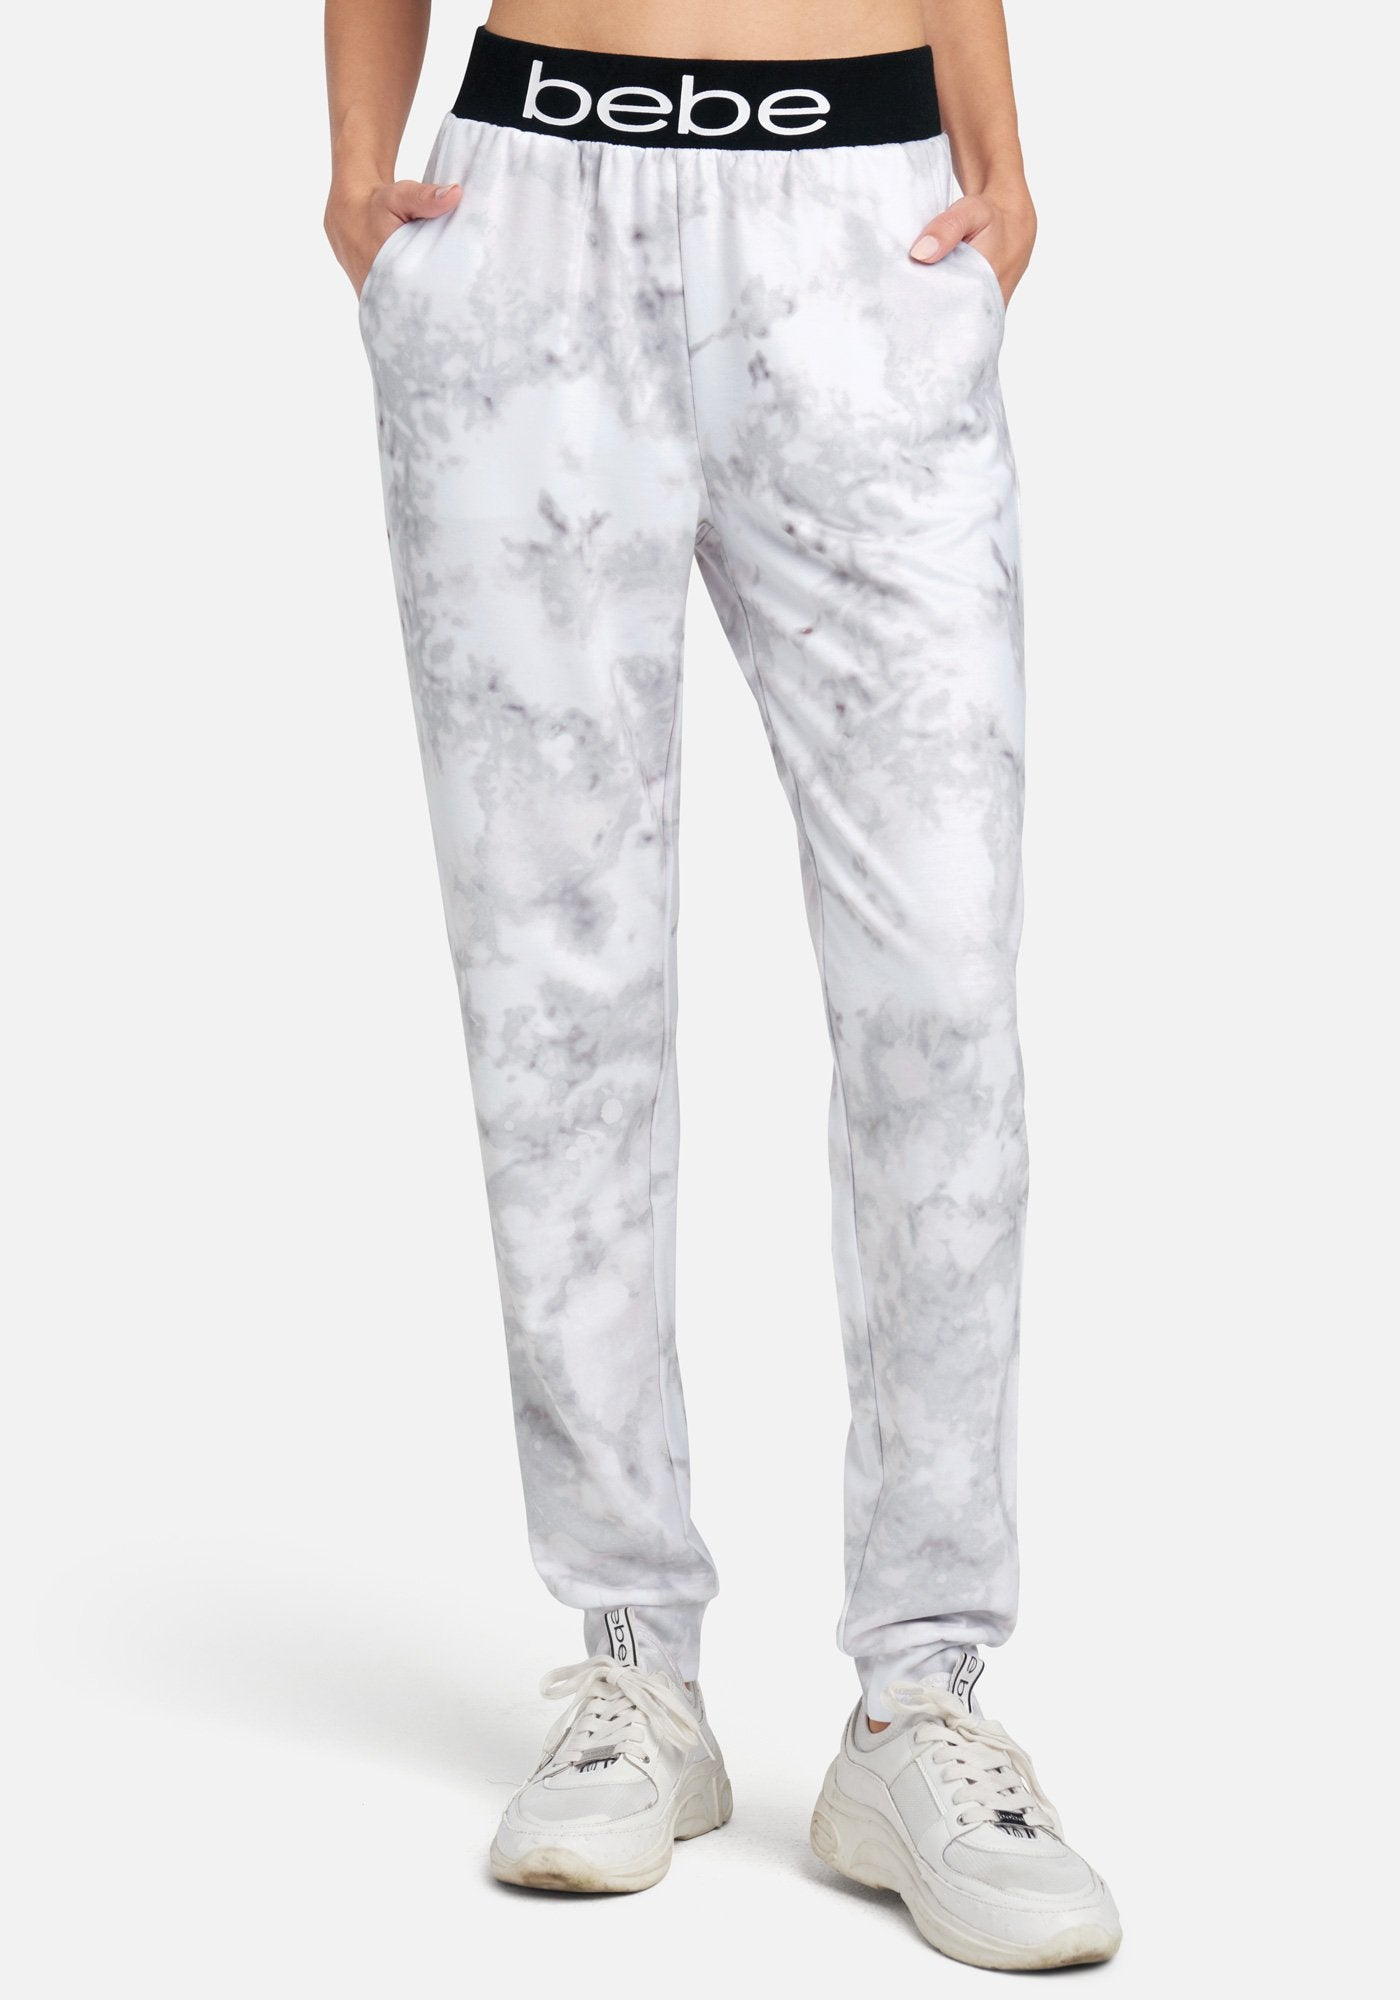 Women's Bebe Logo Printed Jogger Pant, Size Small in Light Grey Mix Spandex